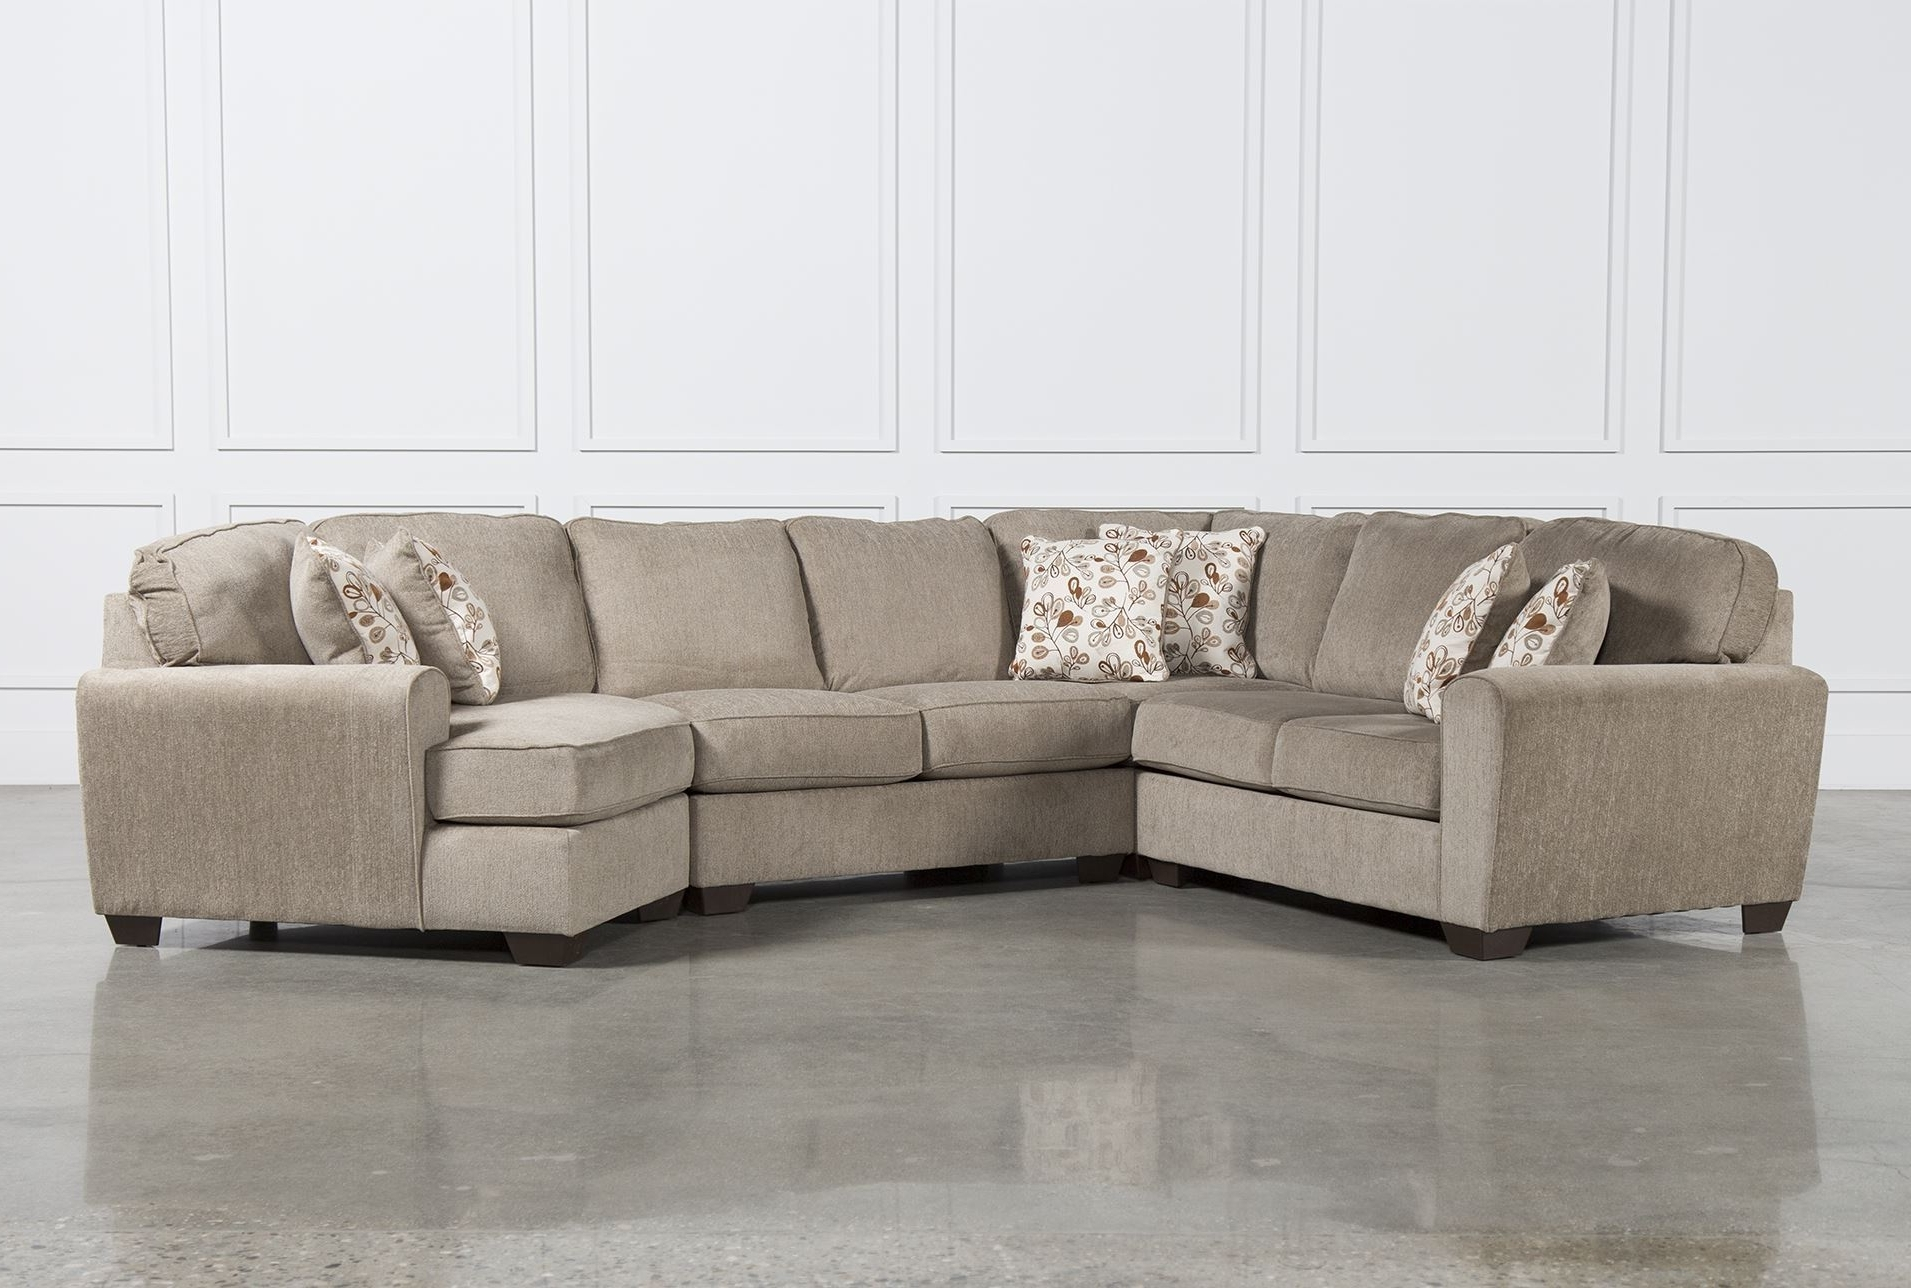 Well Liked 4 Piece Sectional Sofas With Chaise Inside Patola Park 4 Piece Sectional W Raf Cuddler Living Spaces In Sofa (View 7 of 15)